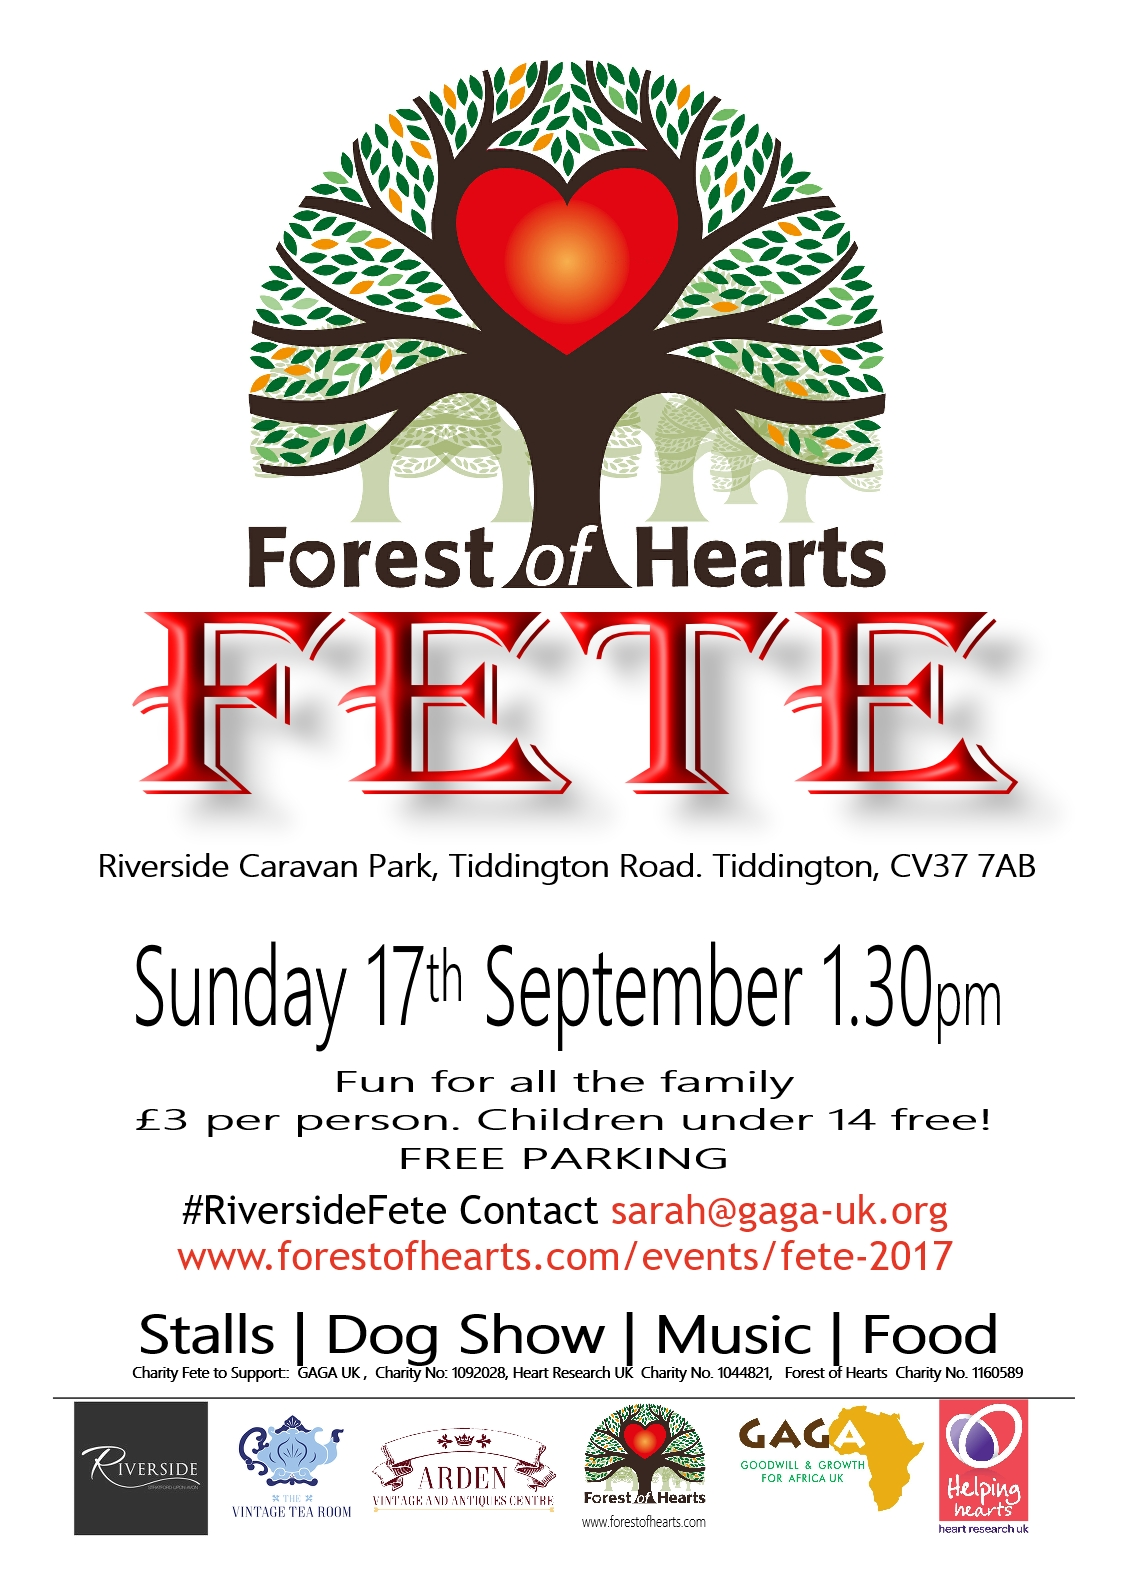 Fun Family Fete 17th September 2017 Stratford upon Avon V5.jpg